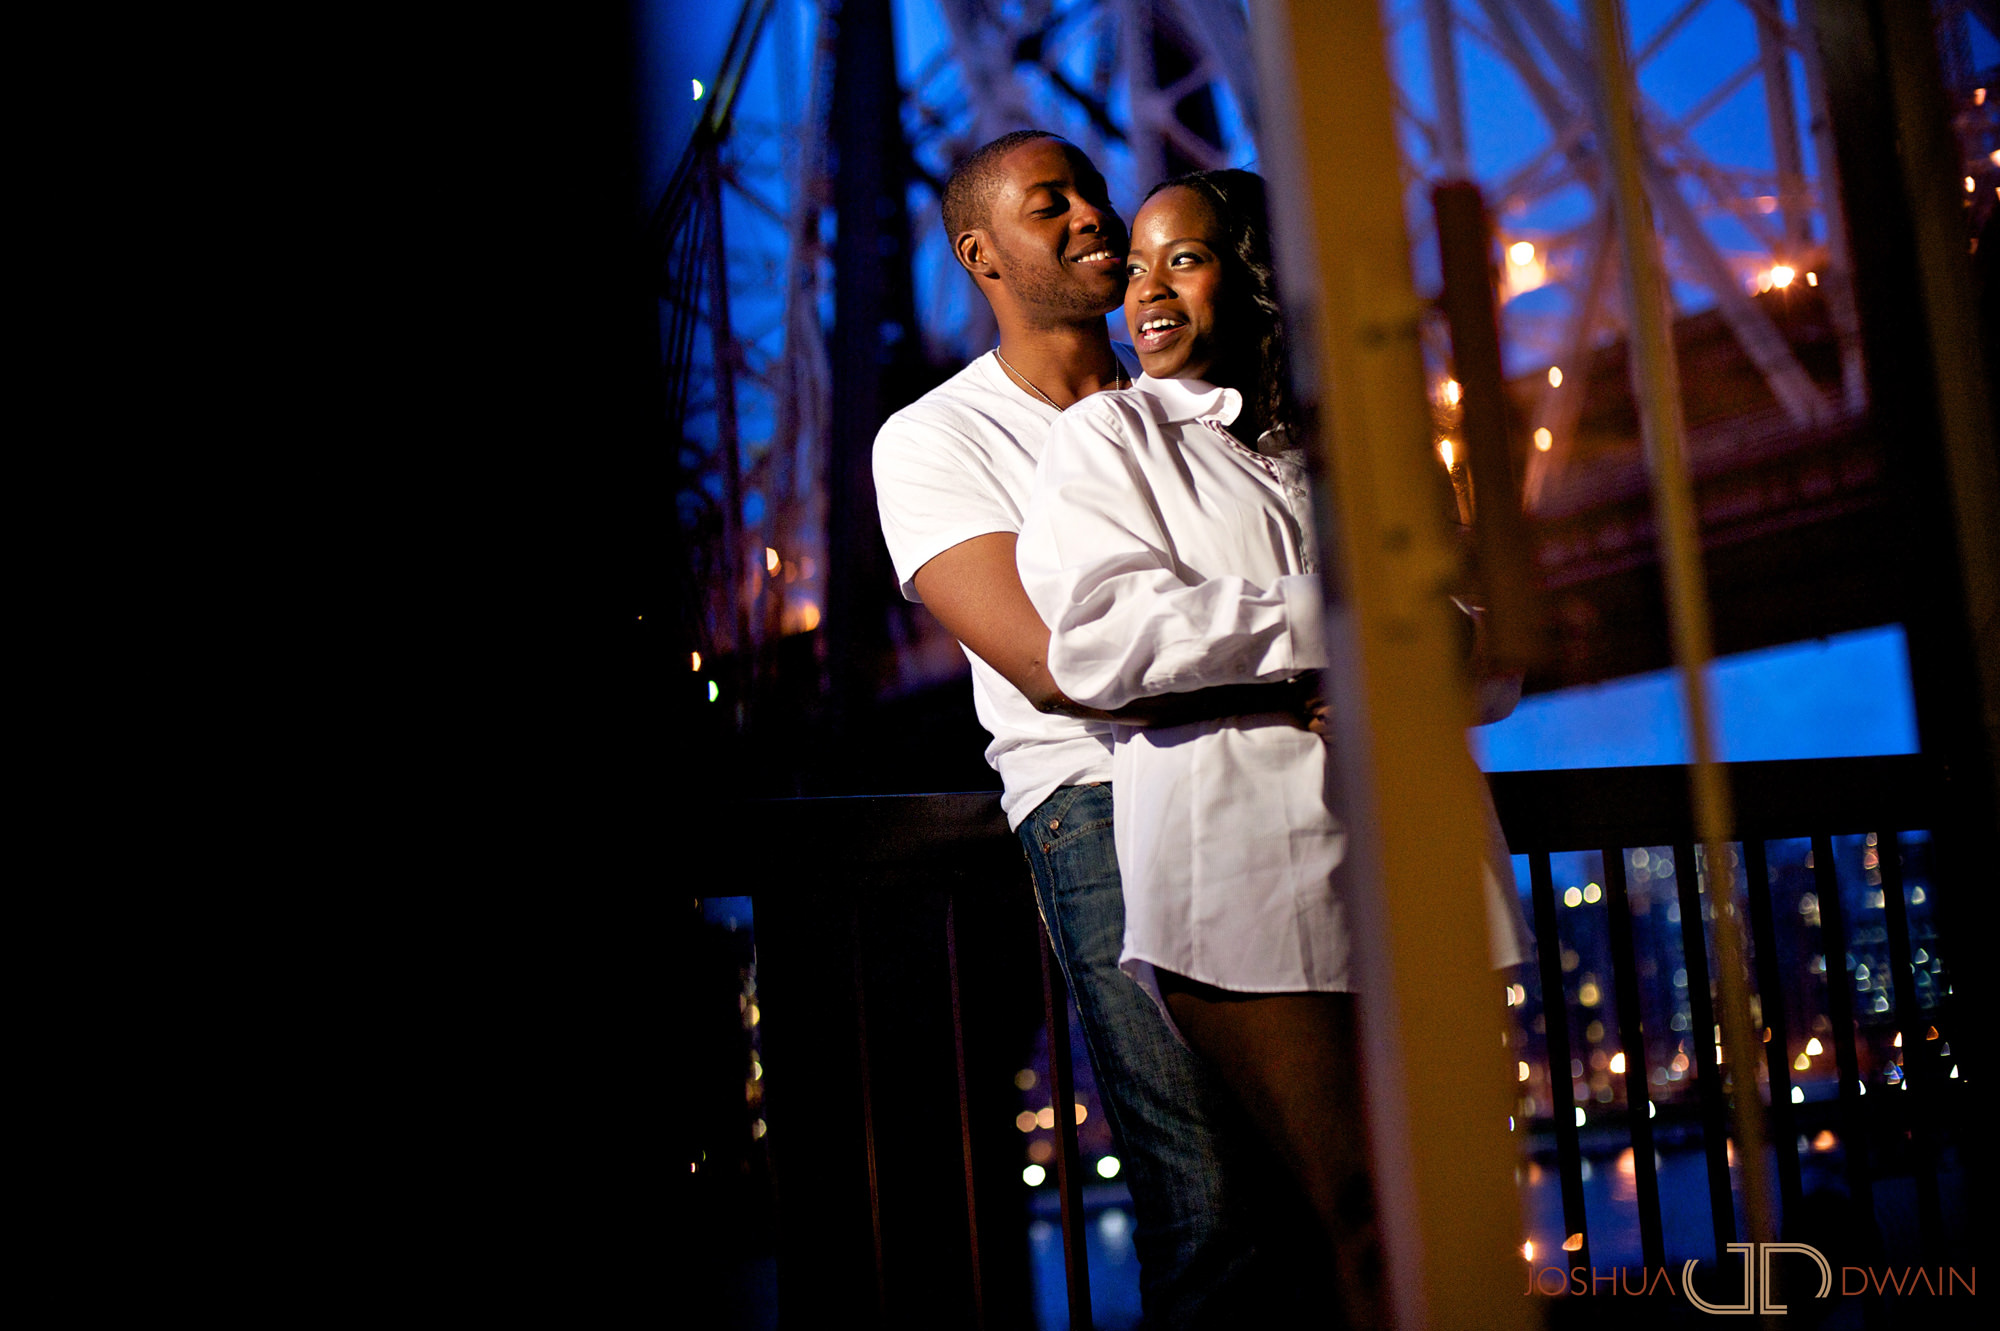 asisat-ben-004-ravel-hotelqueens-ny-engagement-photographer-joshua-dwain-2011-11-23_ab_019